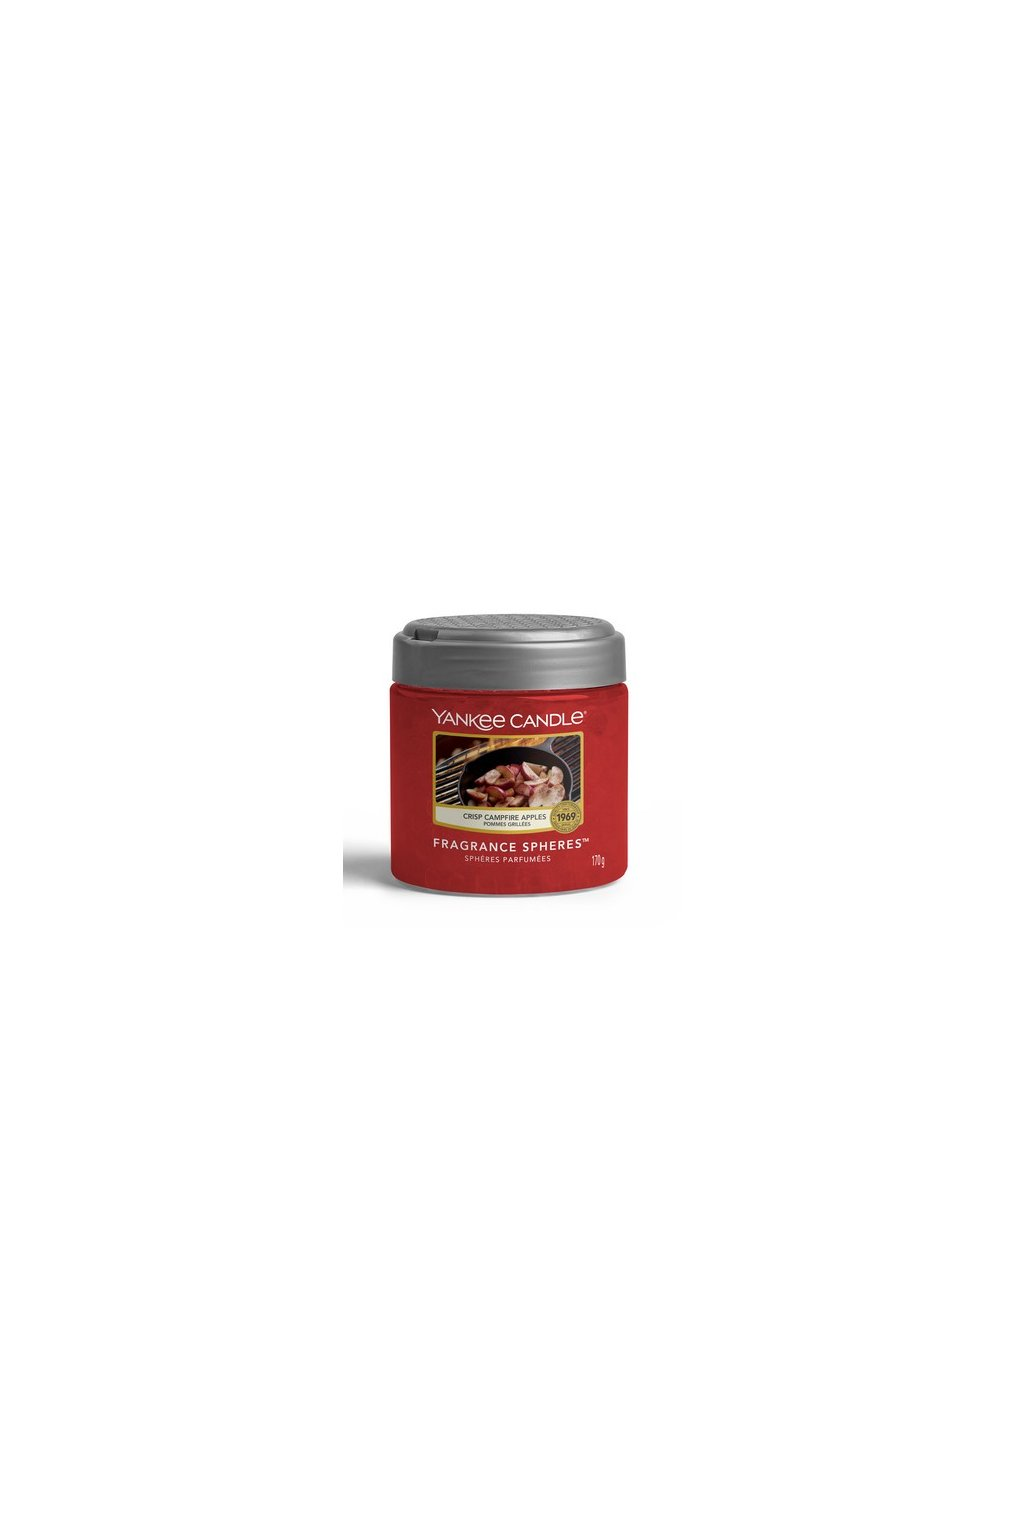 Voňavé Perly Crisp Campfire Apples Yankee Candle